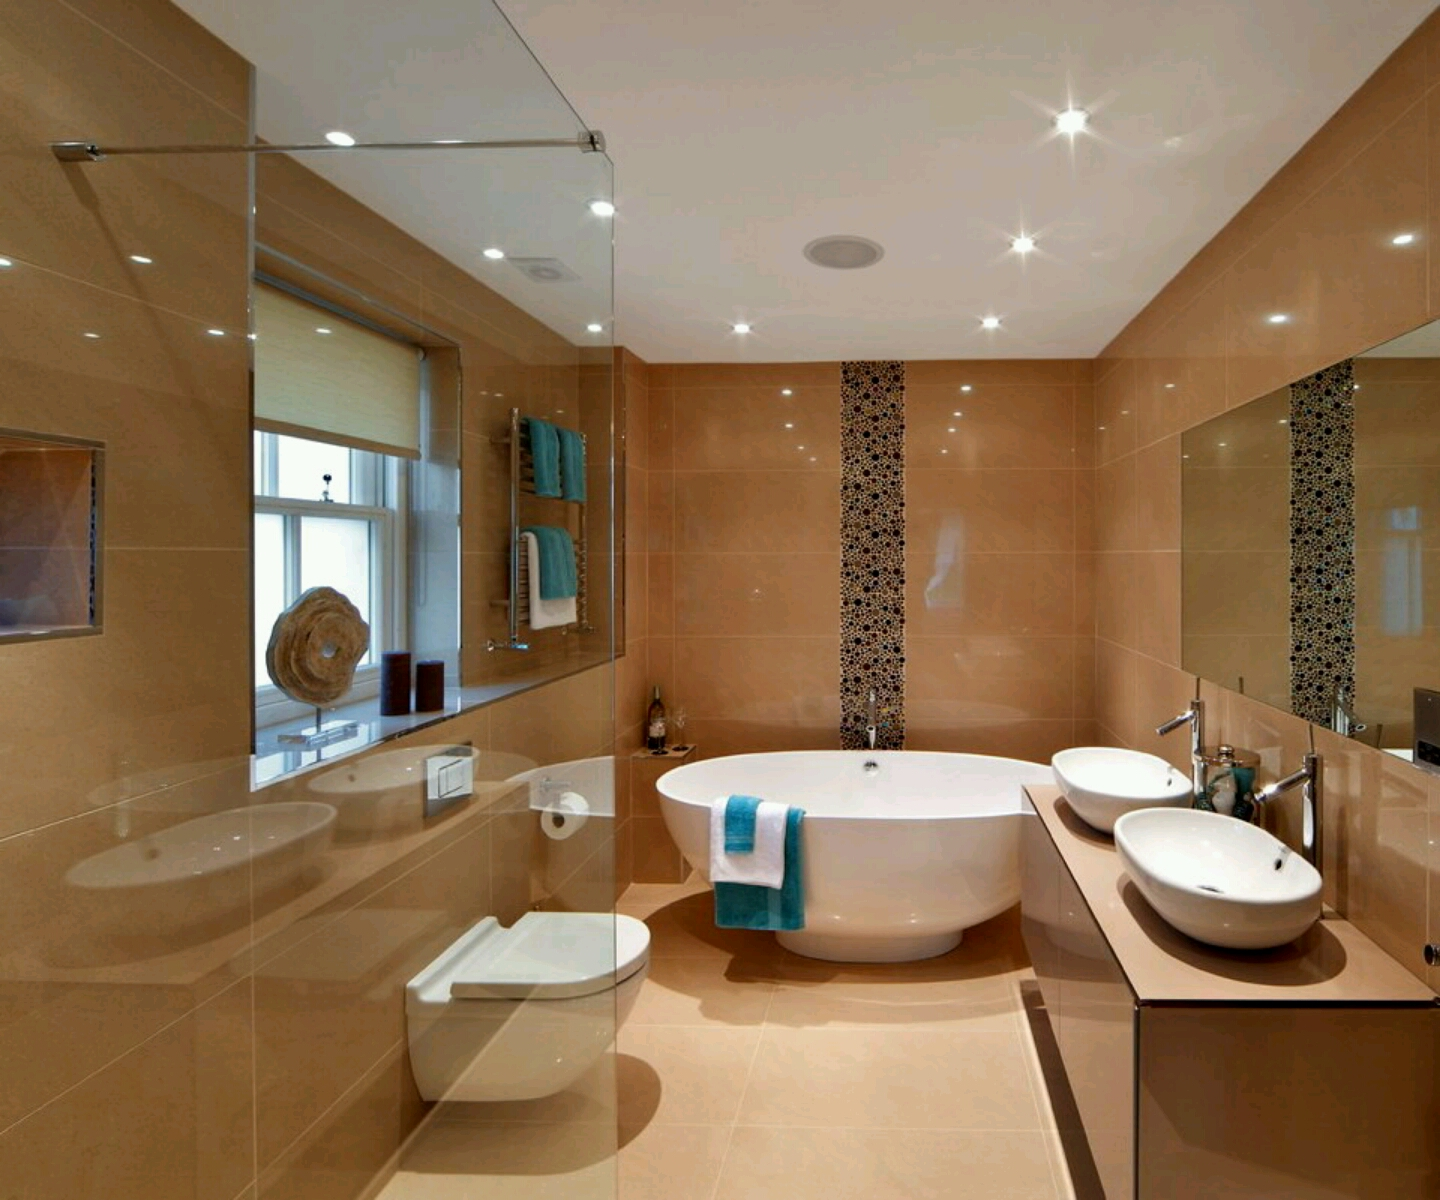 New home designs latest luxury modern bathrooms designs for Home restroom design